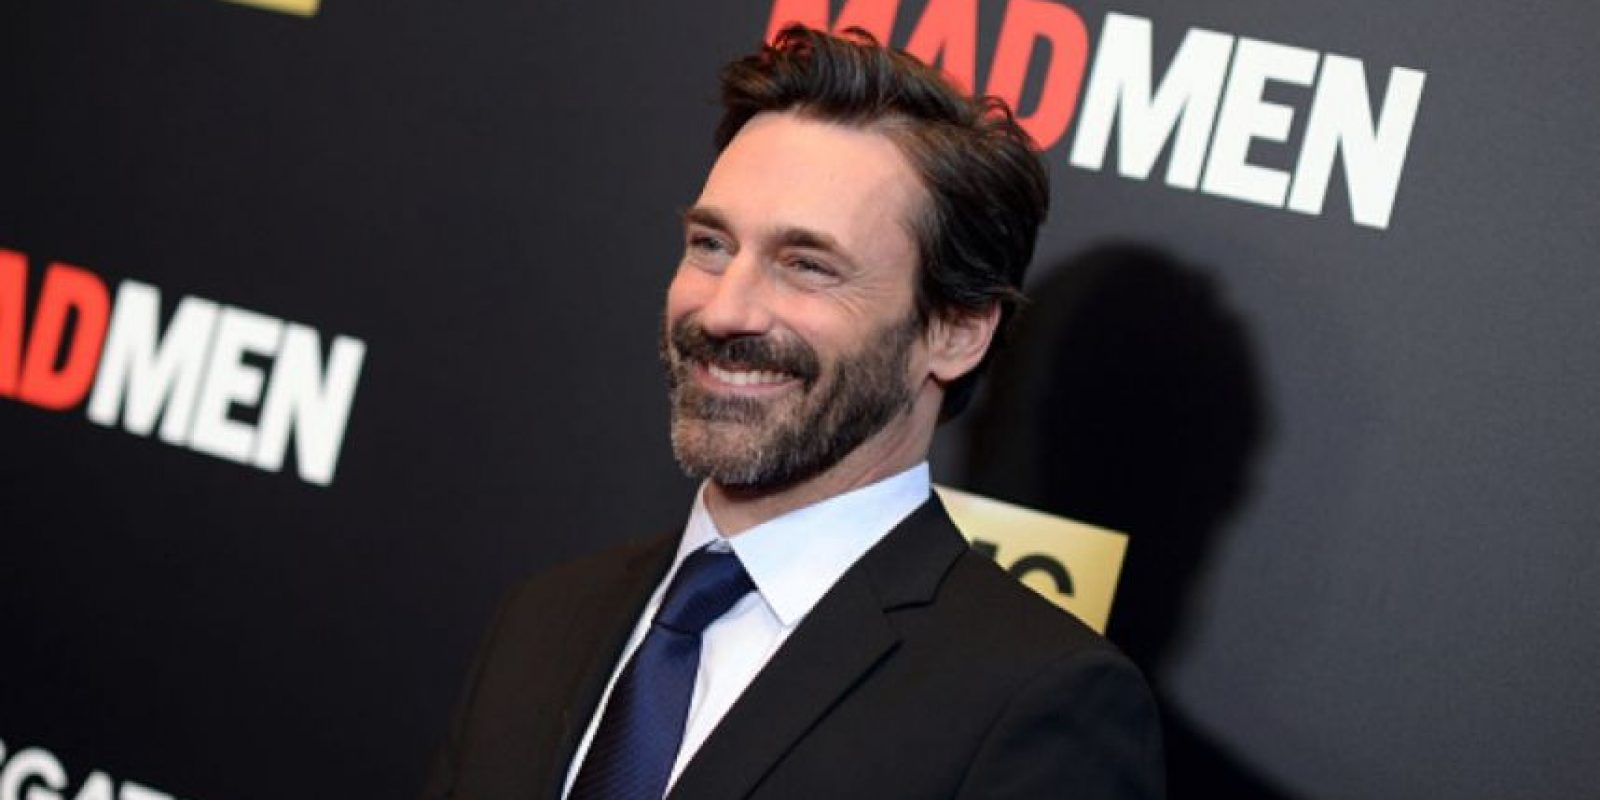 2. Jon Hamm Foto: Getty Images